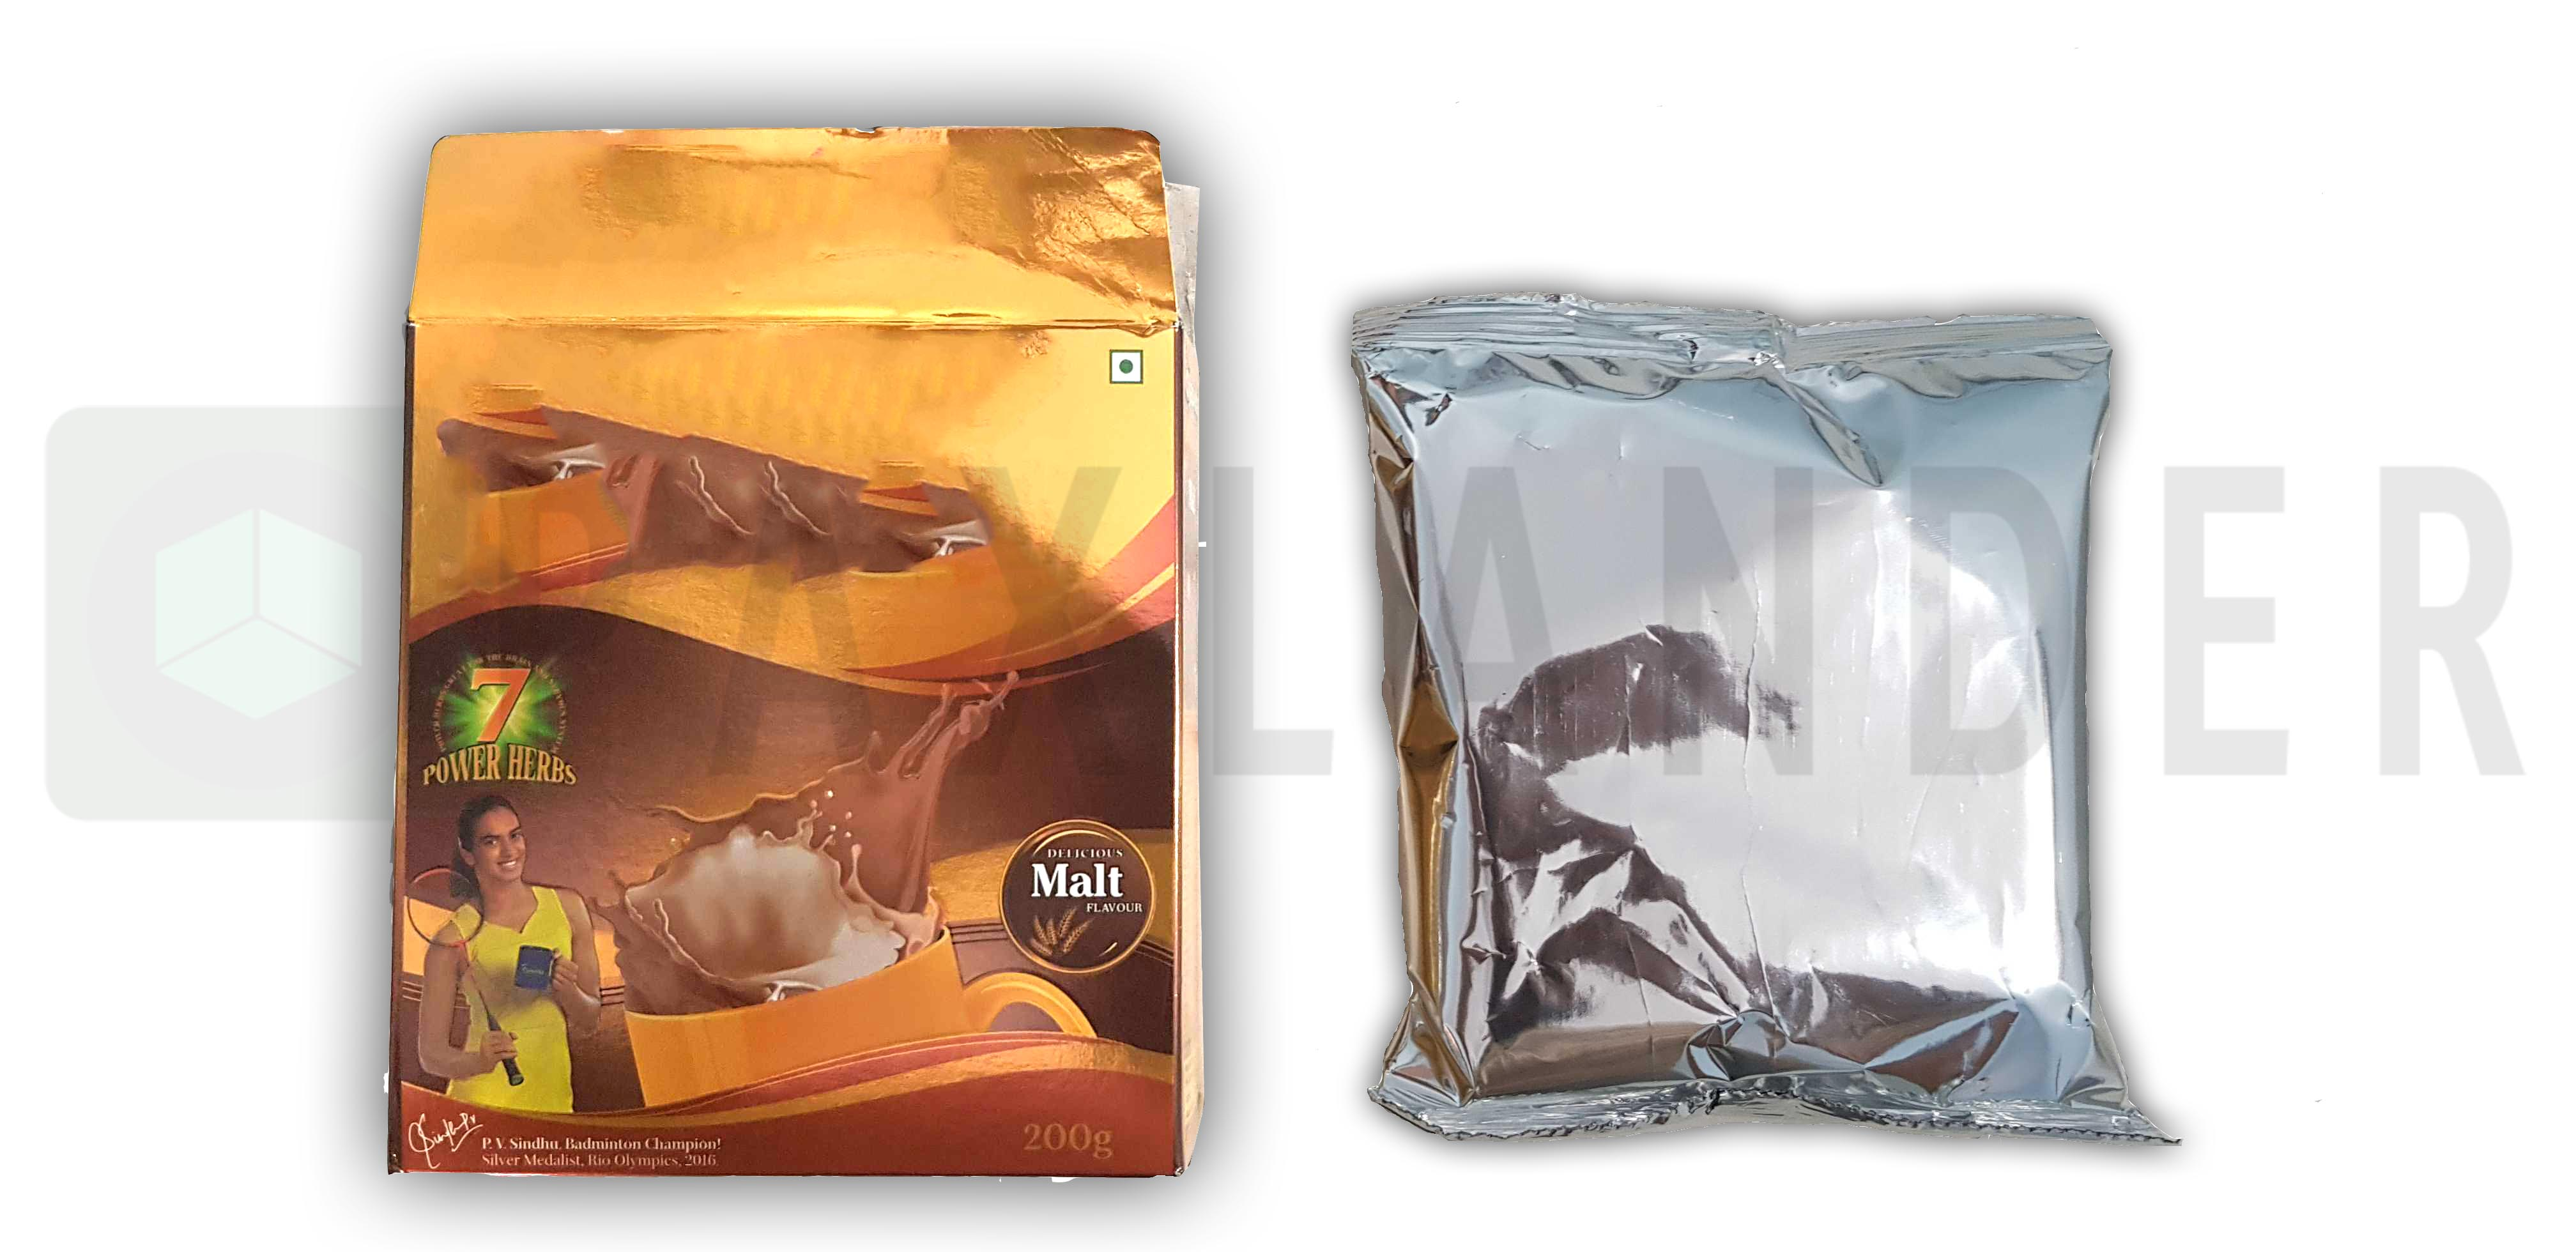 Primary Packaging & Secondary Packaging Image